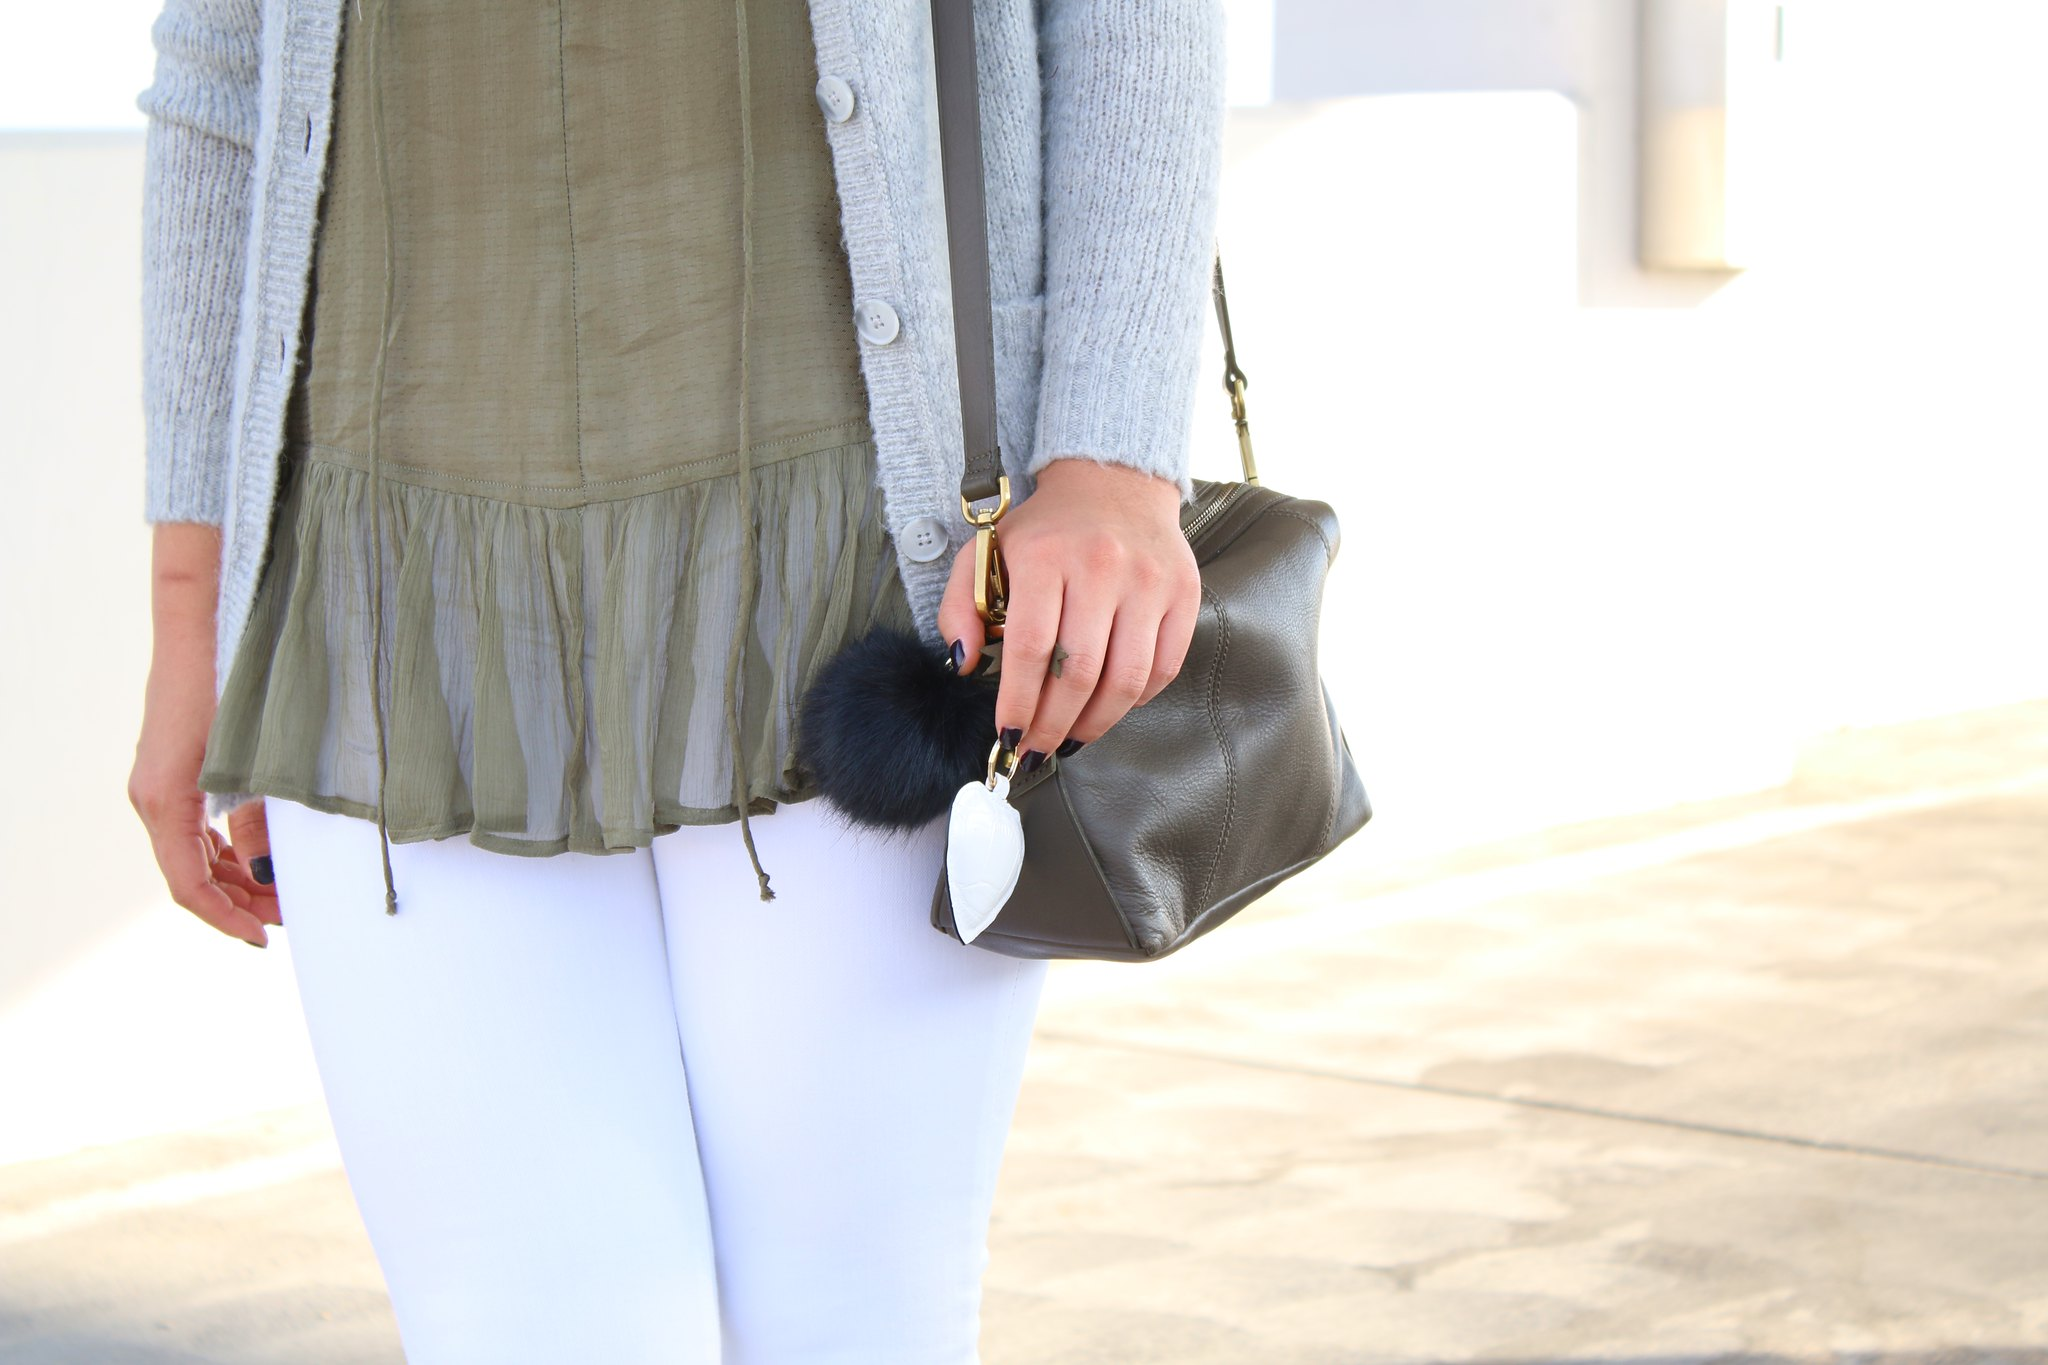 simplyxclassic, olive green, transition, summer to fall, white jeans, orange county, fashion blogger, mommy blogger, mom blog, lifestyle, style, ootd